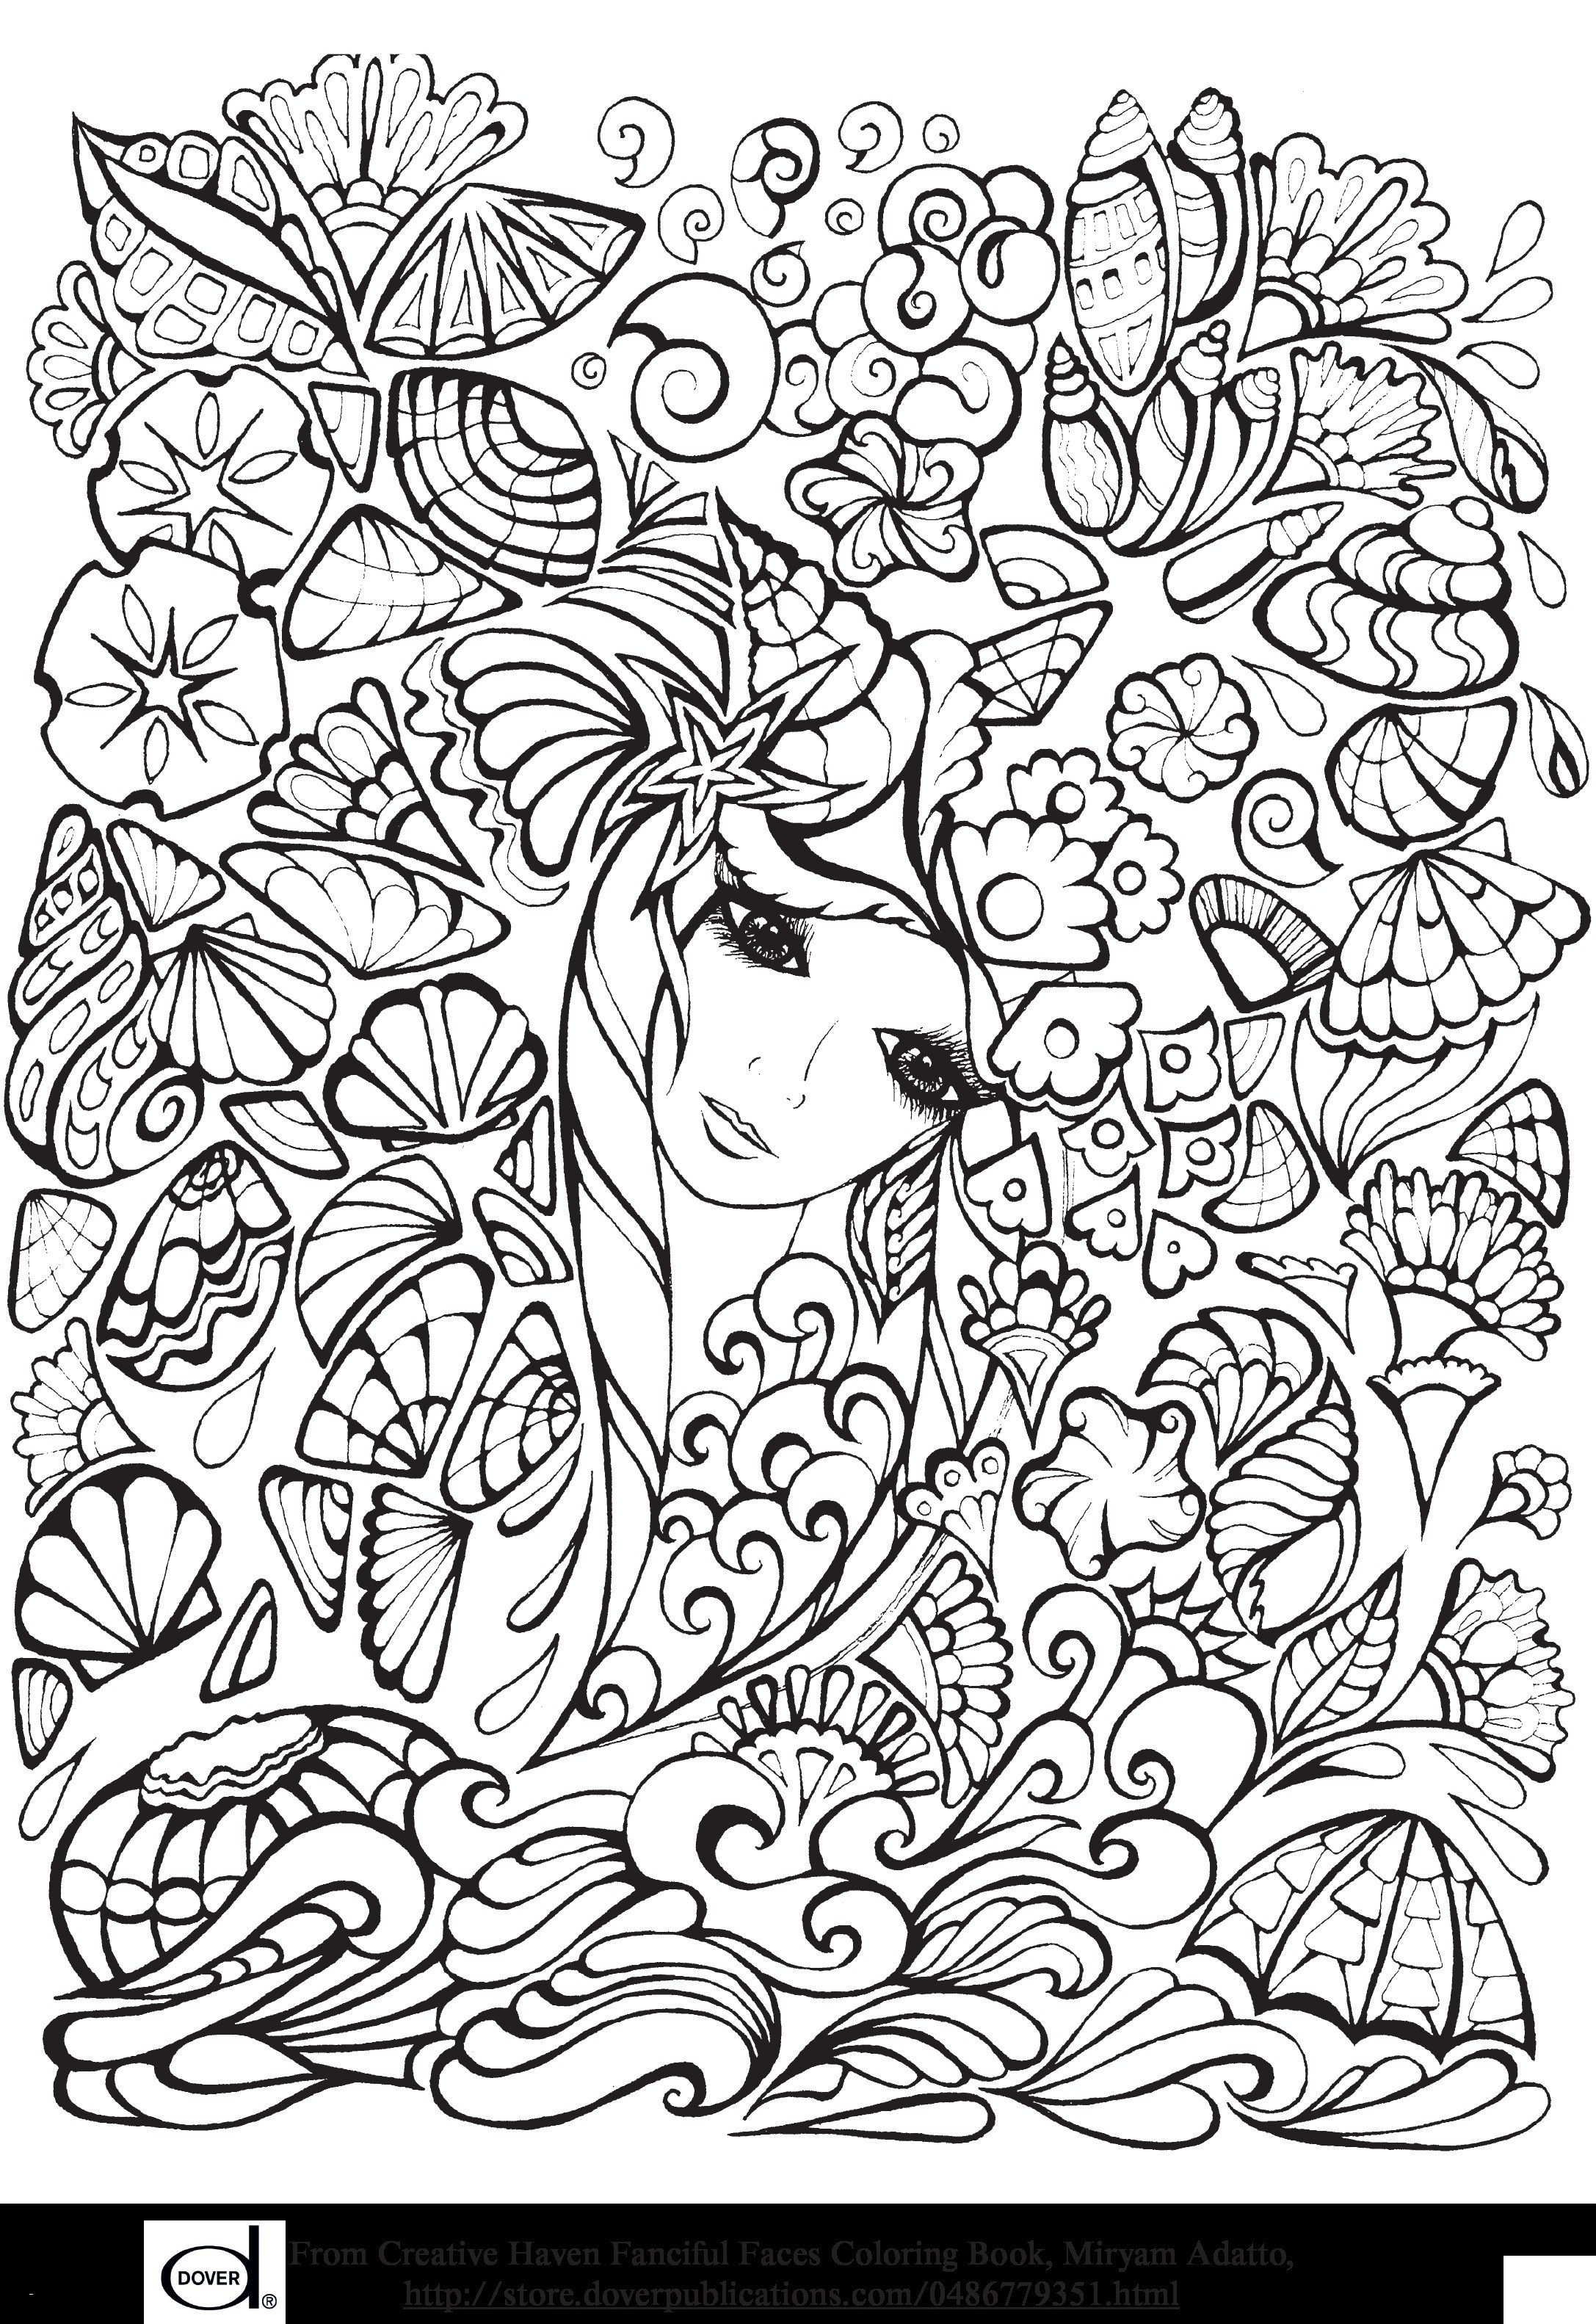 street fighter coloring pages Collection-Texas Coloring Page 20-n